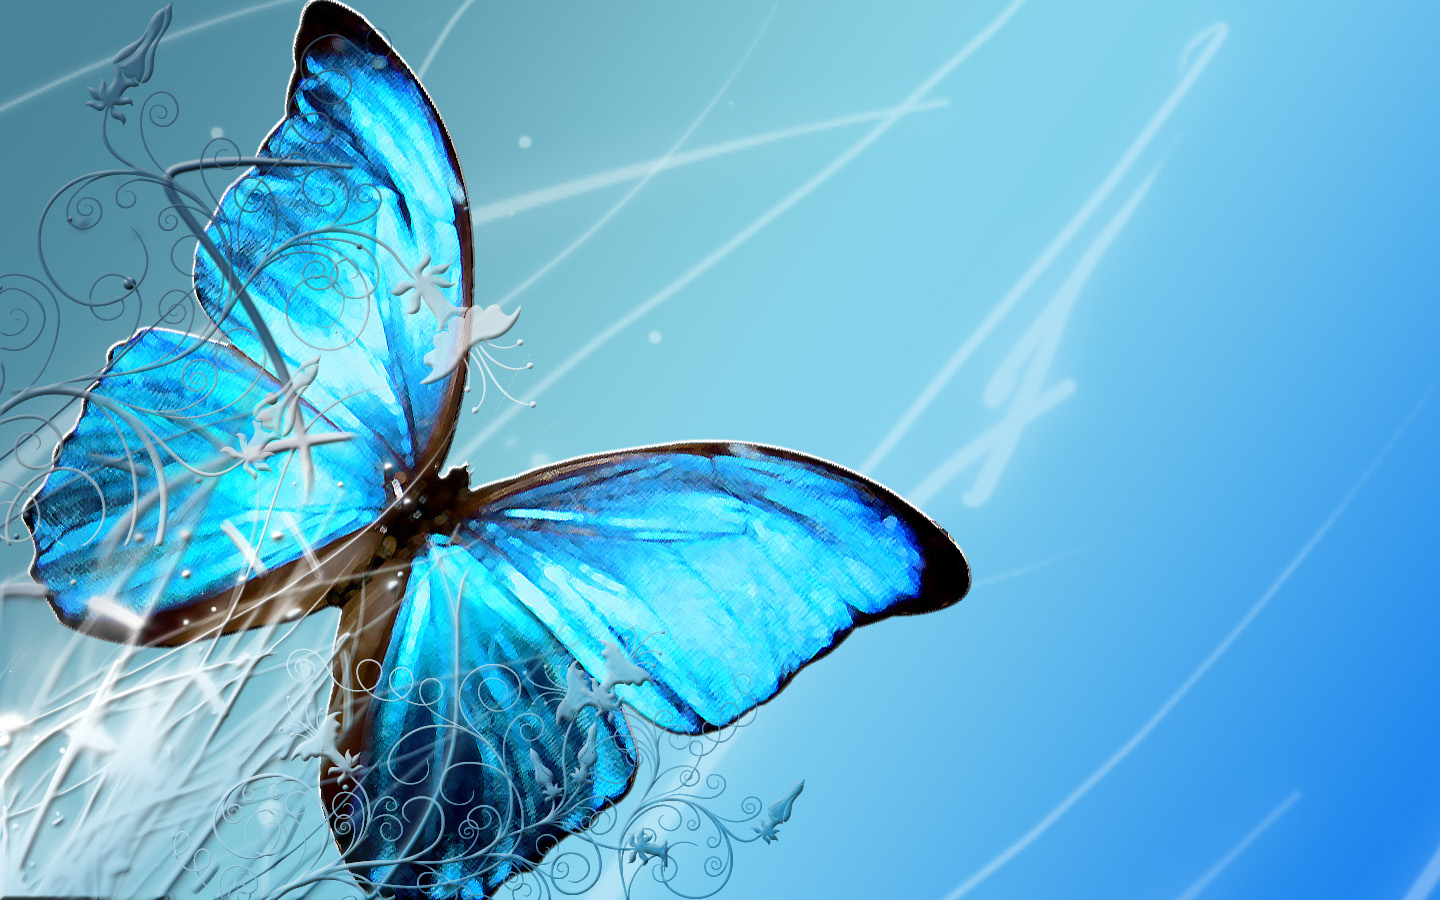 Download Wallpaper Of Butterfly